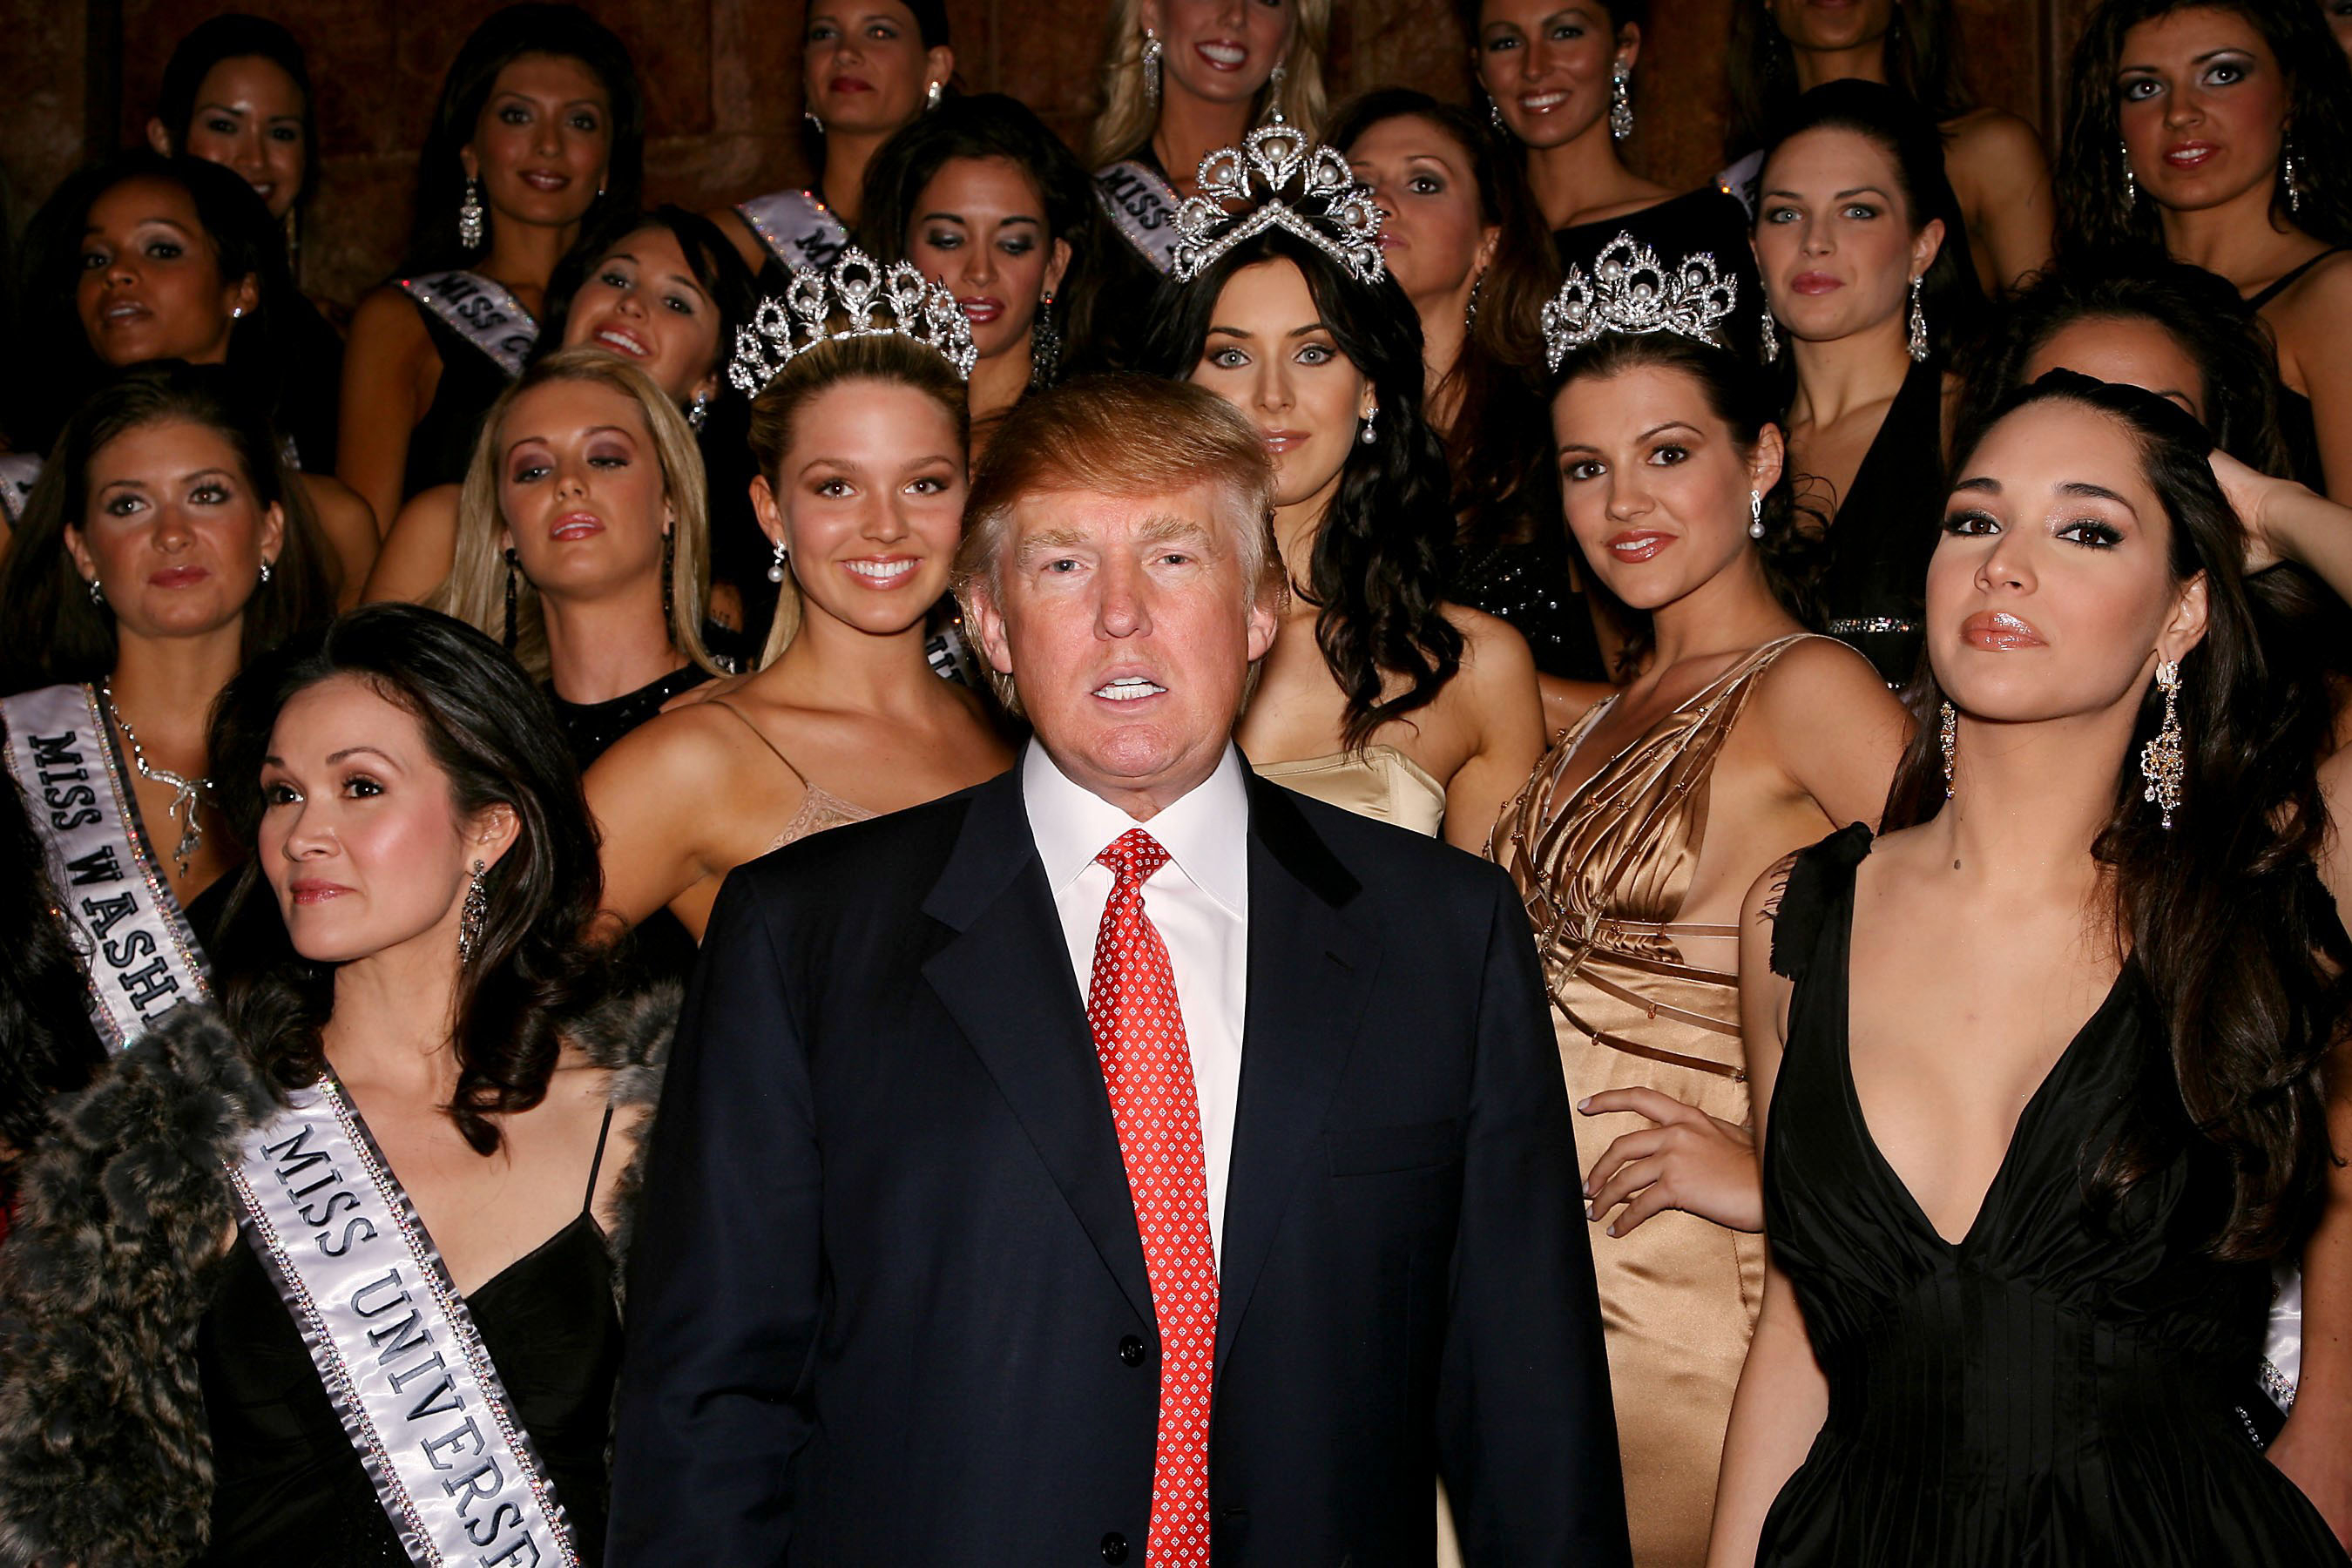 Young miss nude universe